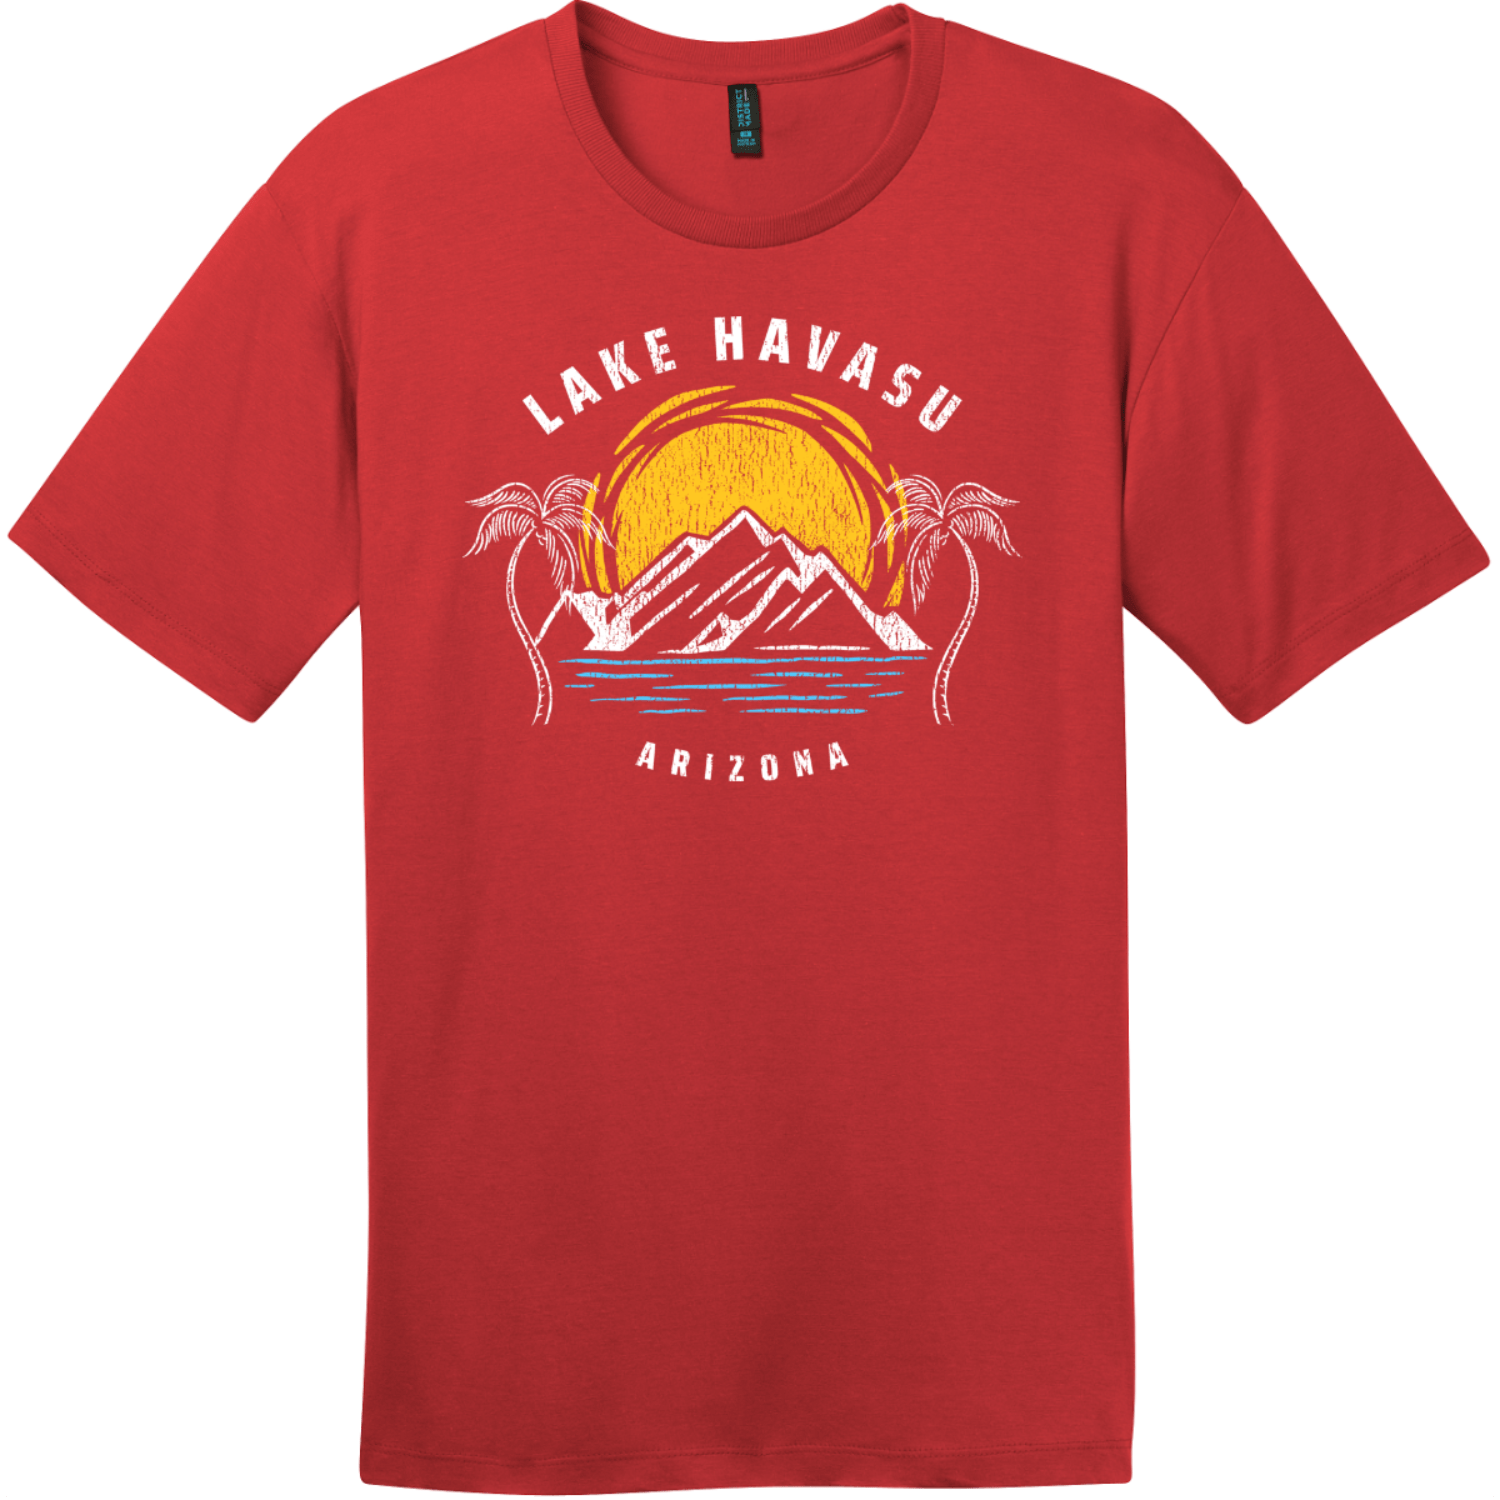 Lake Havasu Arizona T-Shirt Classic Red District Perfect Weight Tee DT104